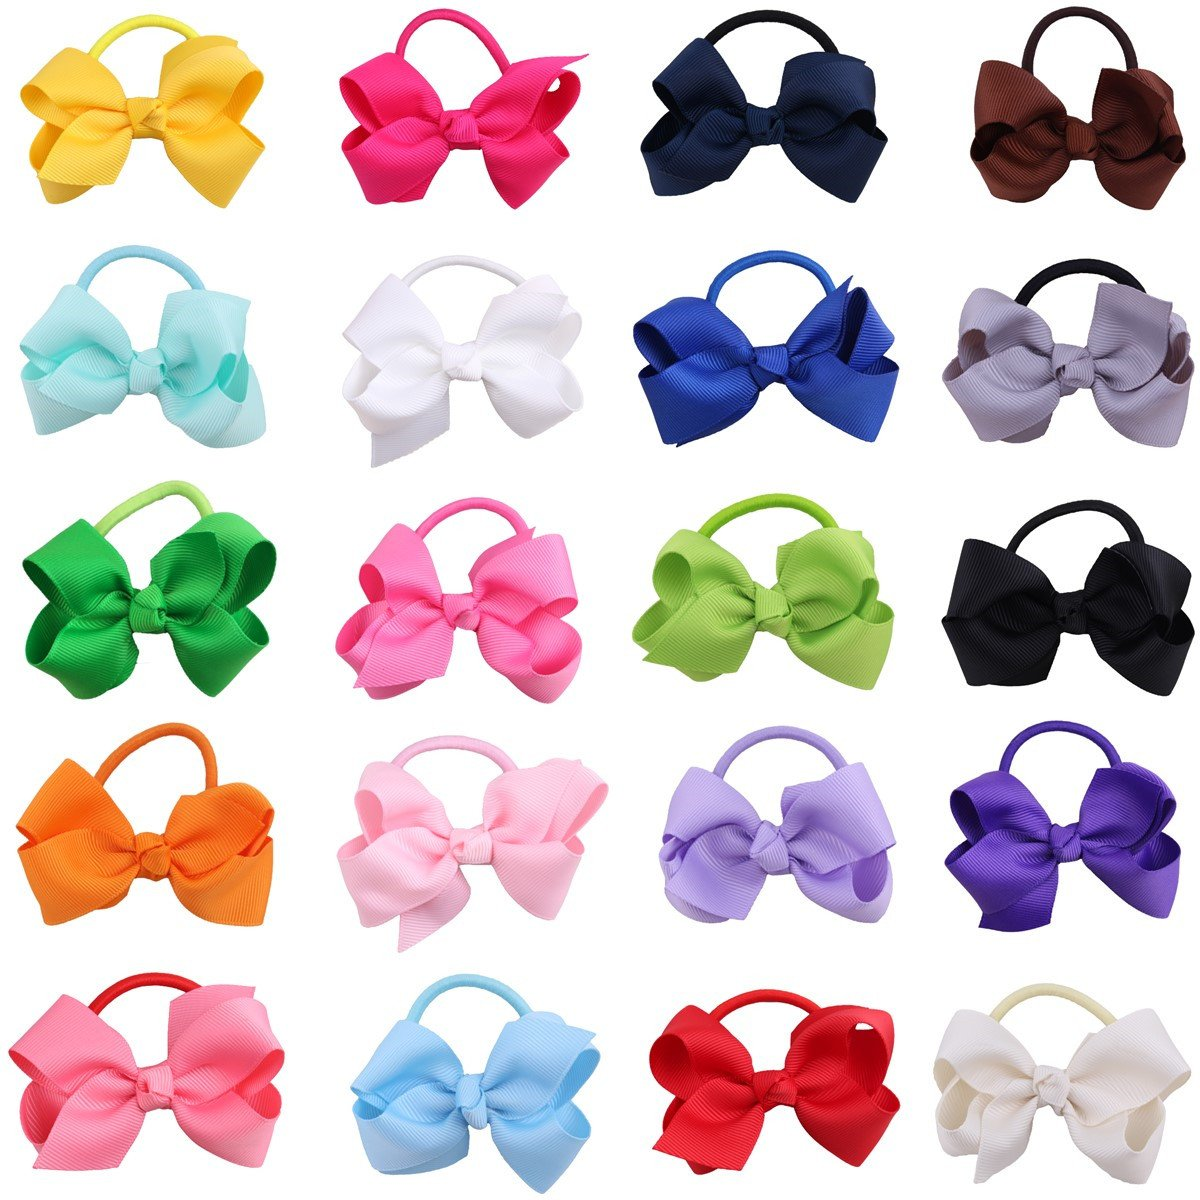 20PCS Baby Handmade Grosgrain Ribbon Boutique Elastic Bow Bows Bowknot Hair Bobbles Band Ponytail Holders For Girls kids Child Toddlers Random Color